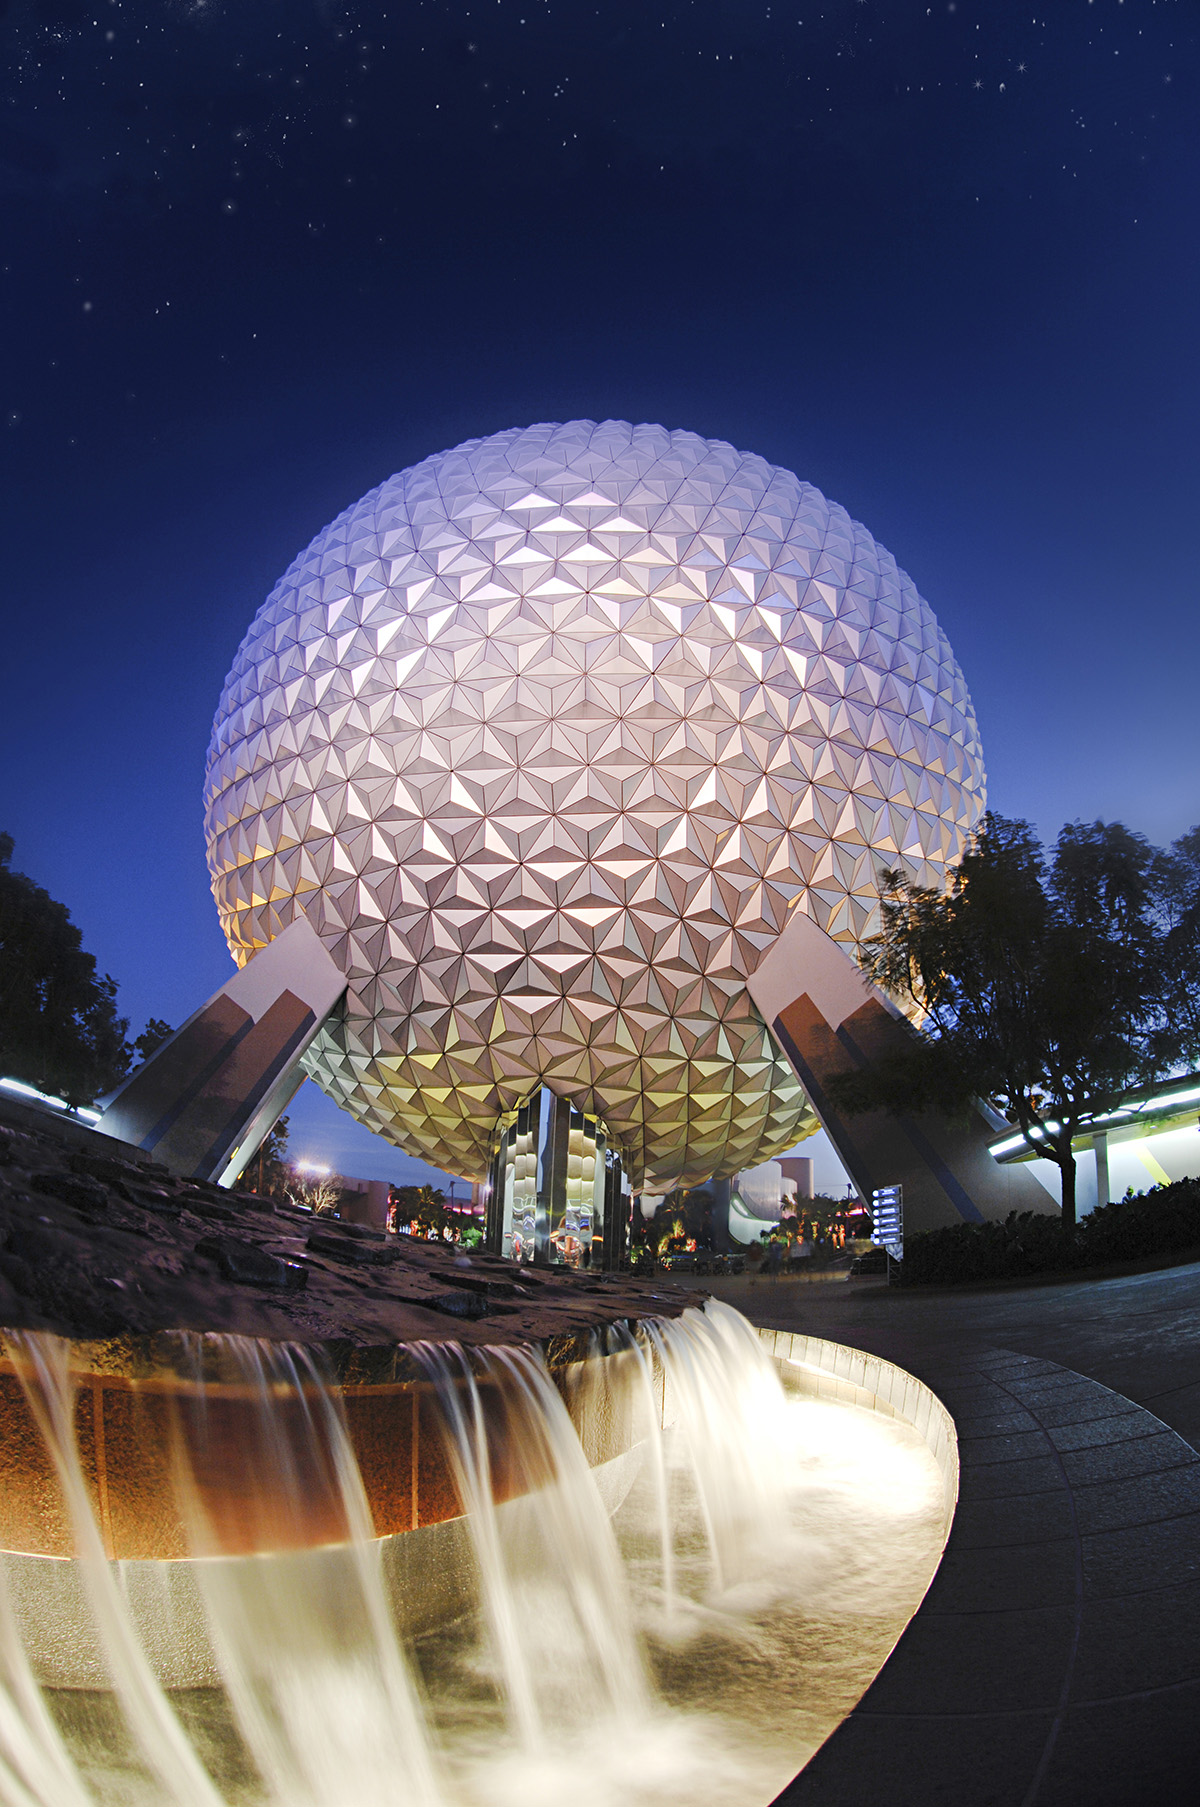 Spaceship Earth -Signature Shot 1200